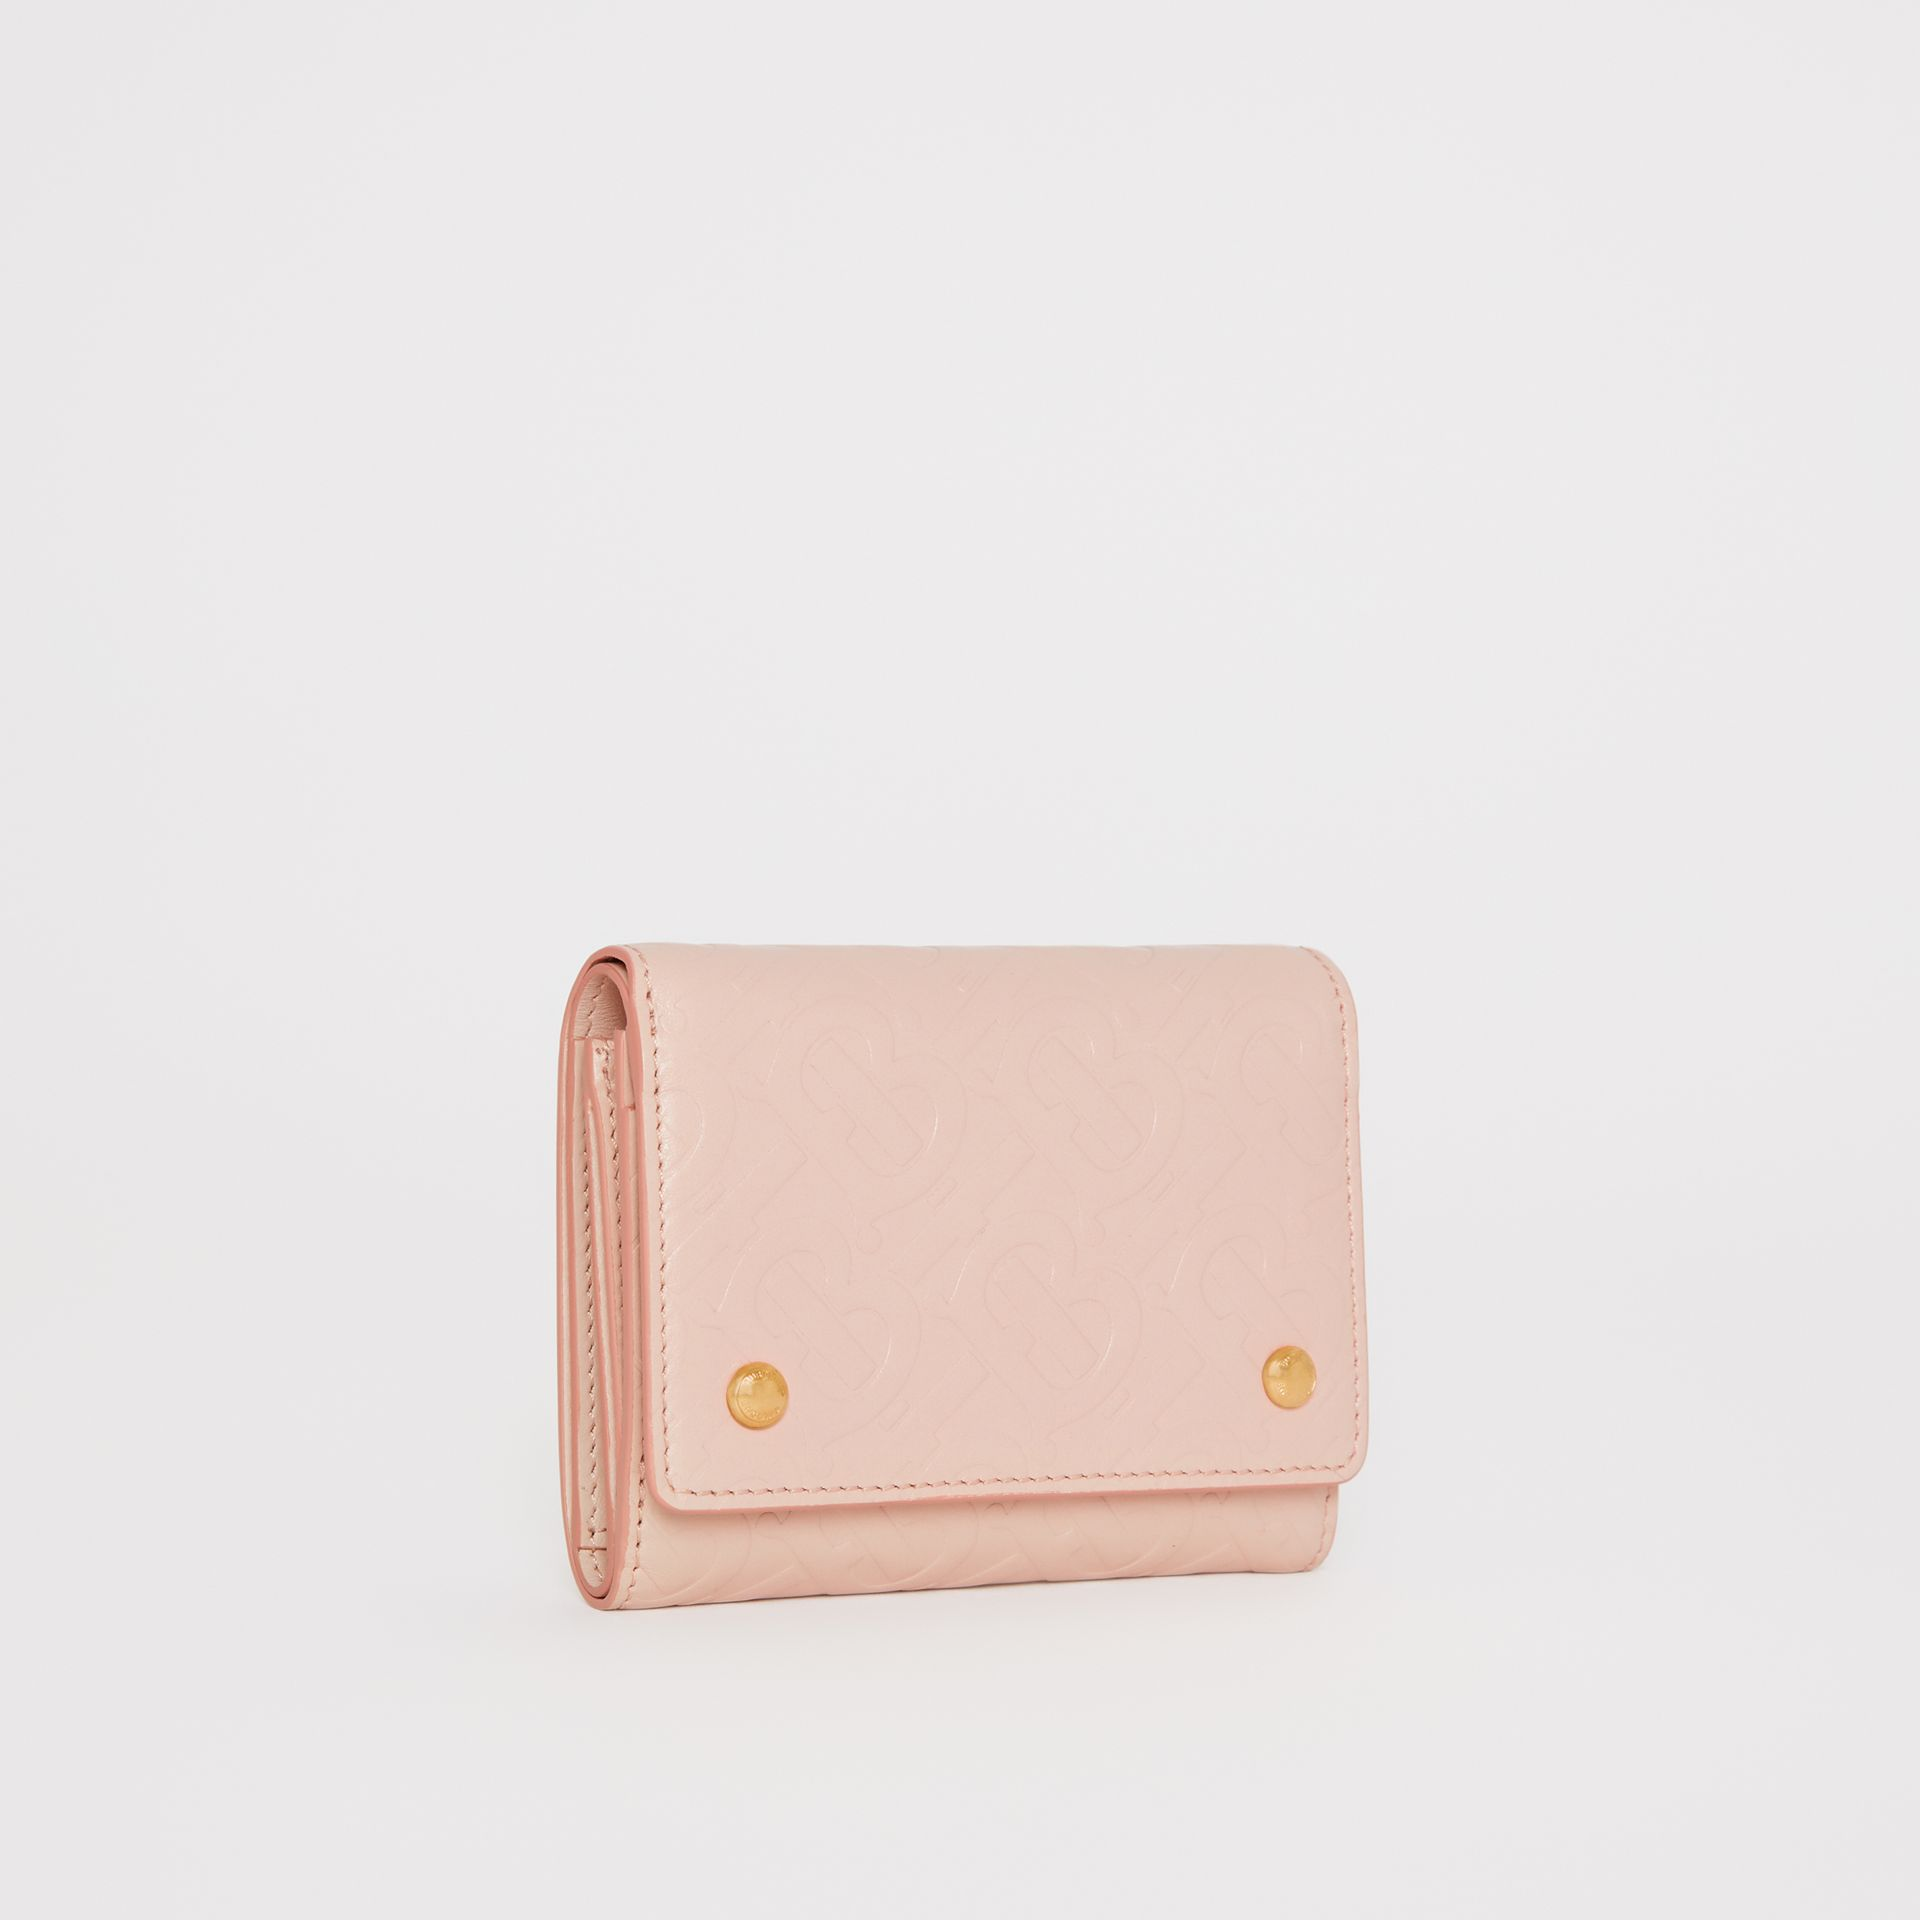 Small Monogram Leather Folding Wallet in Rose Beige | Burberry - gallery image 3